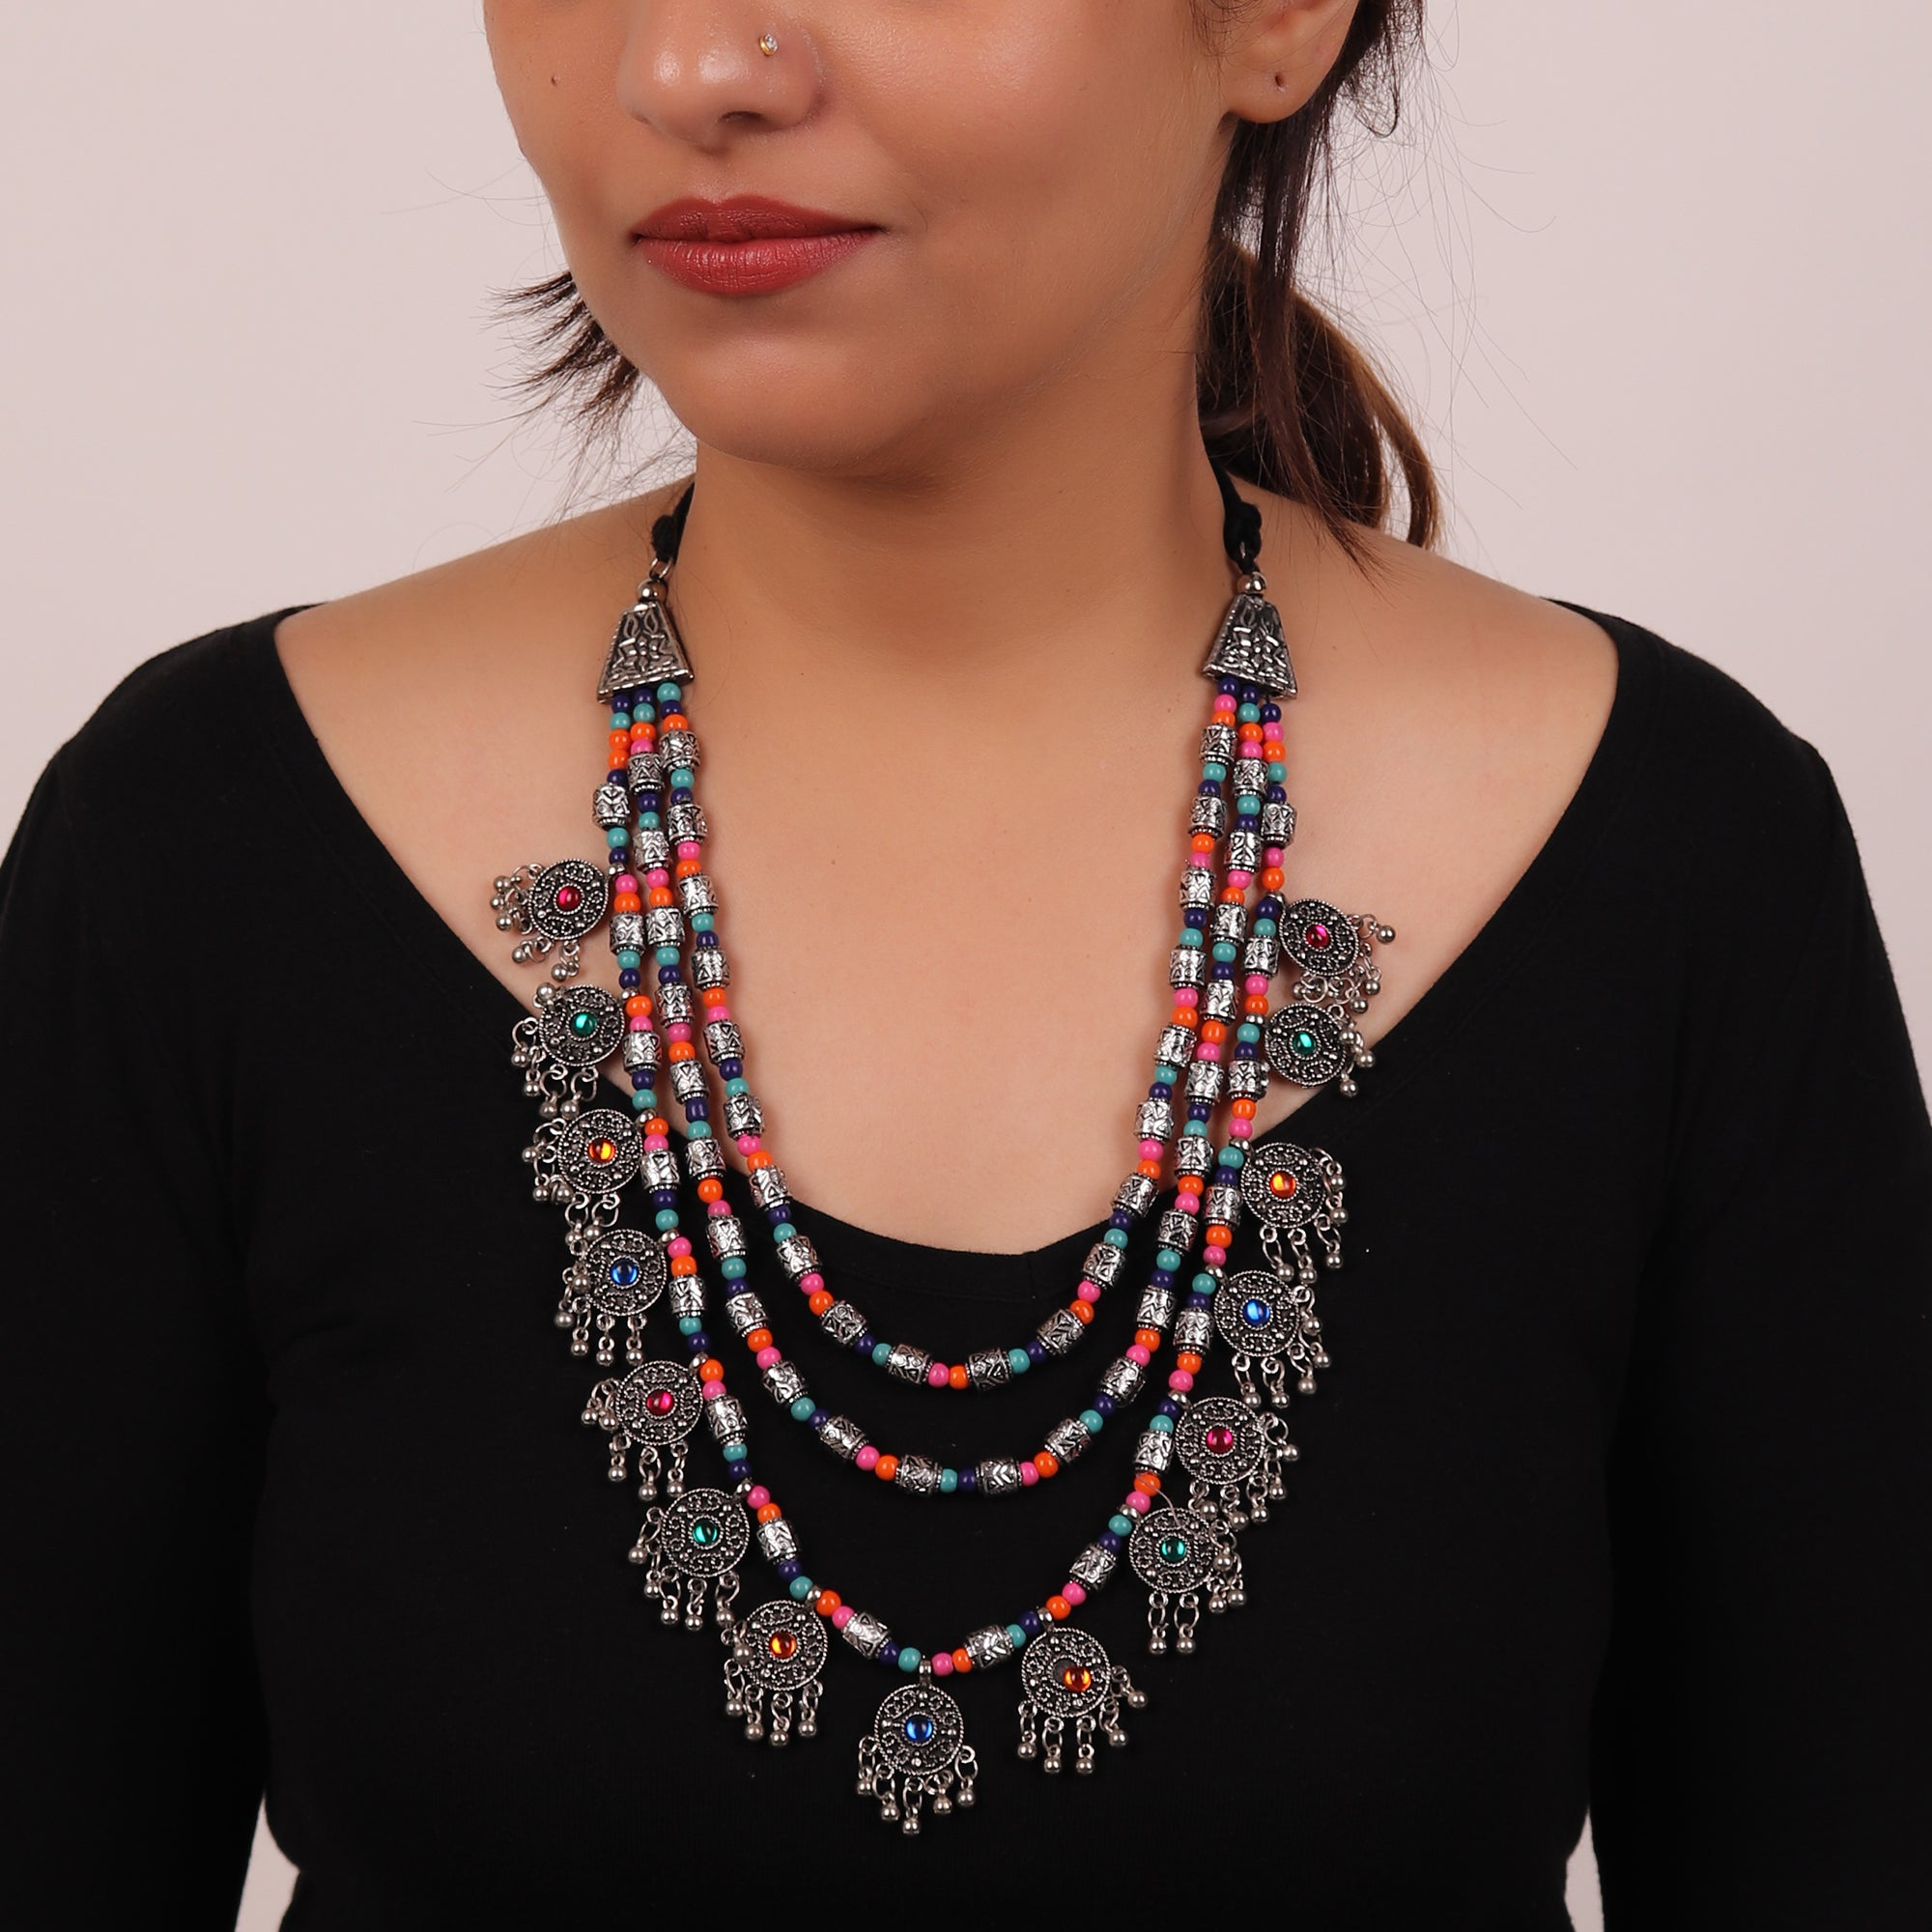 Necklace,The Cookie Layered Necklace in Multicolor - Cippele Multi Store